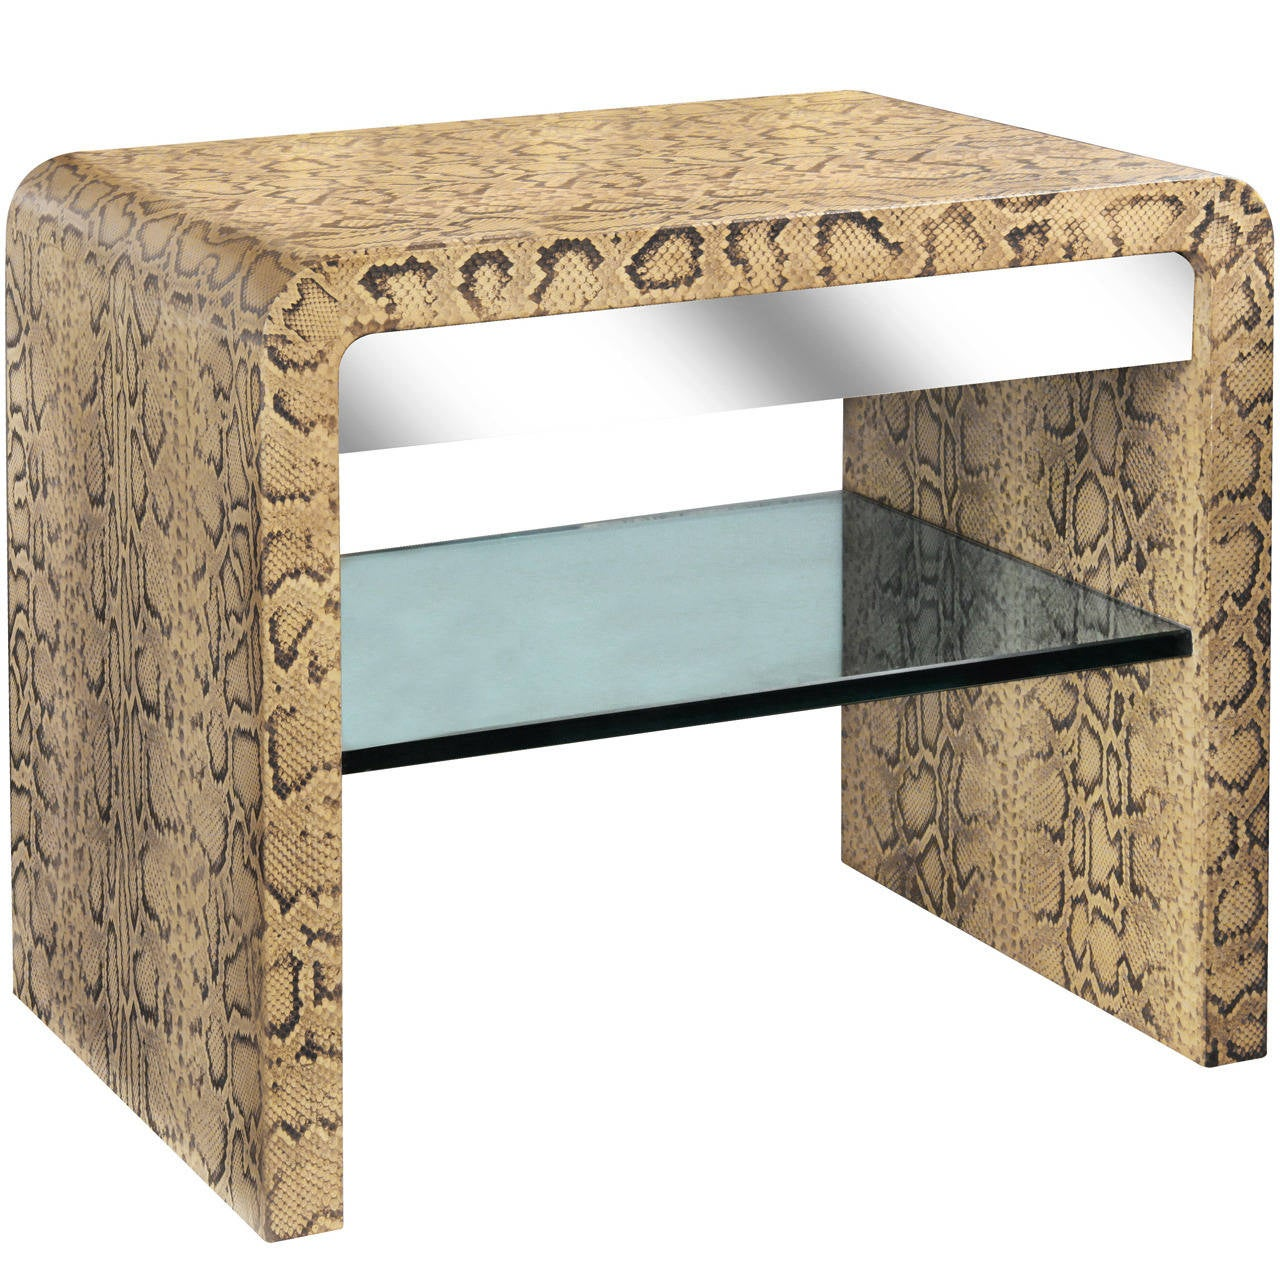 Exceptional waterfall table in python by karl springer at for Table in python